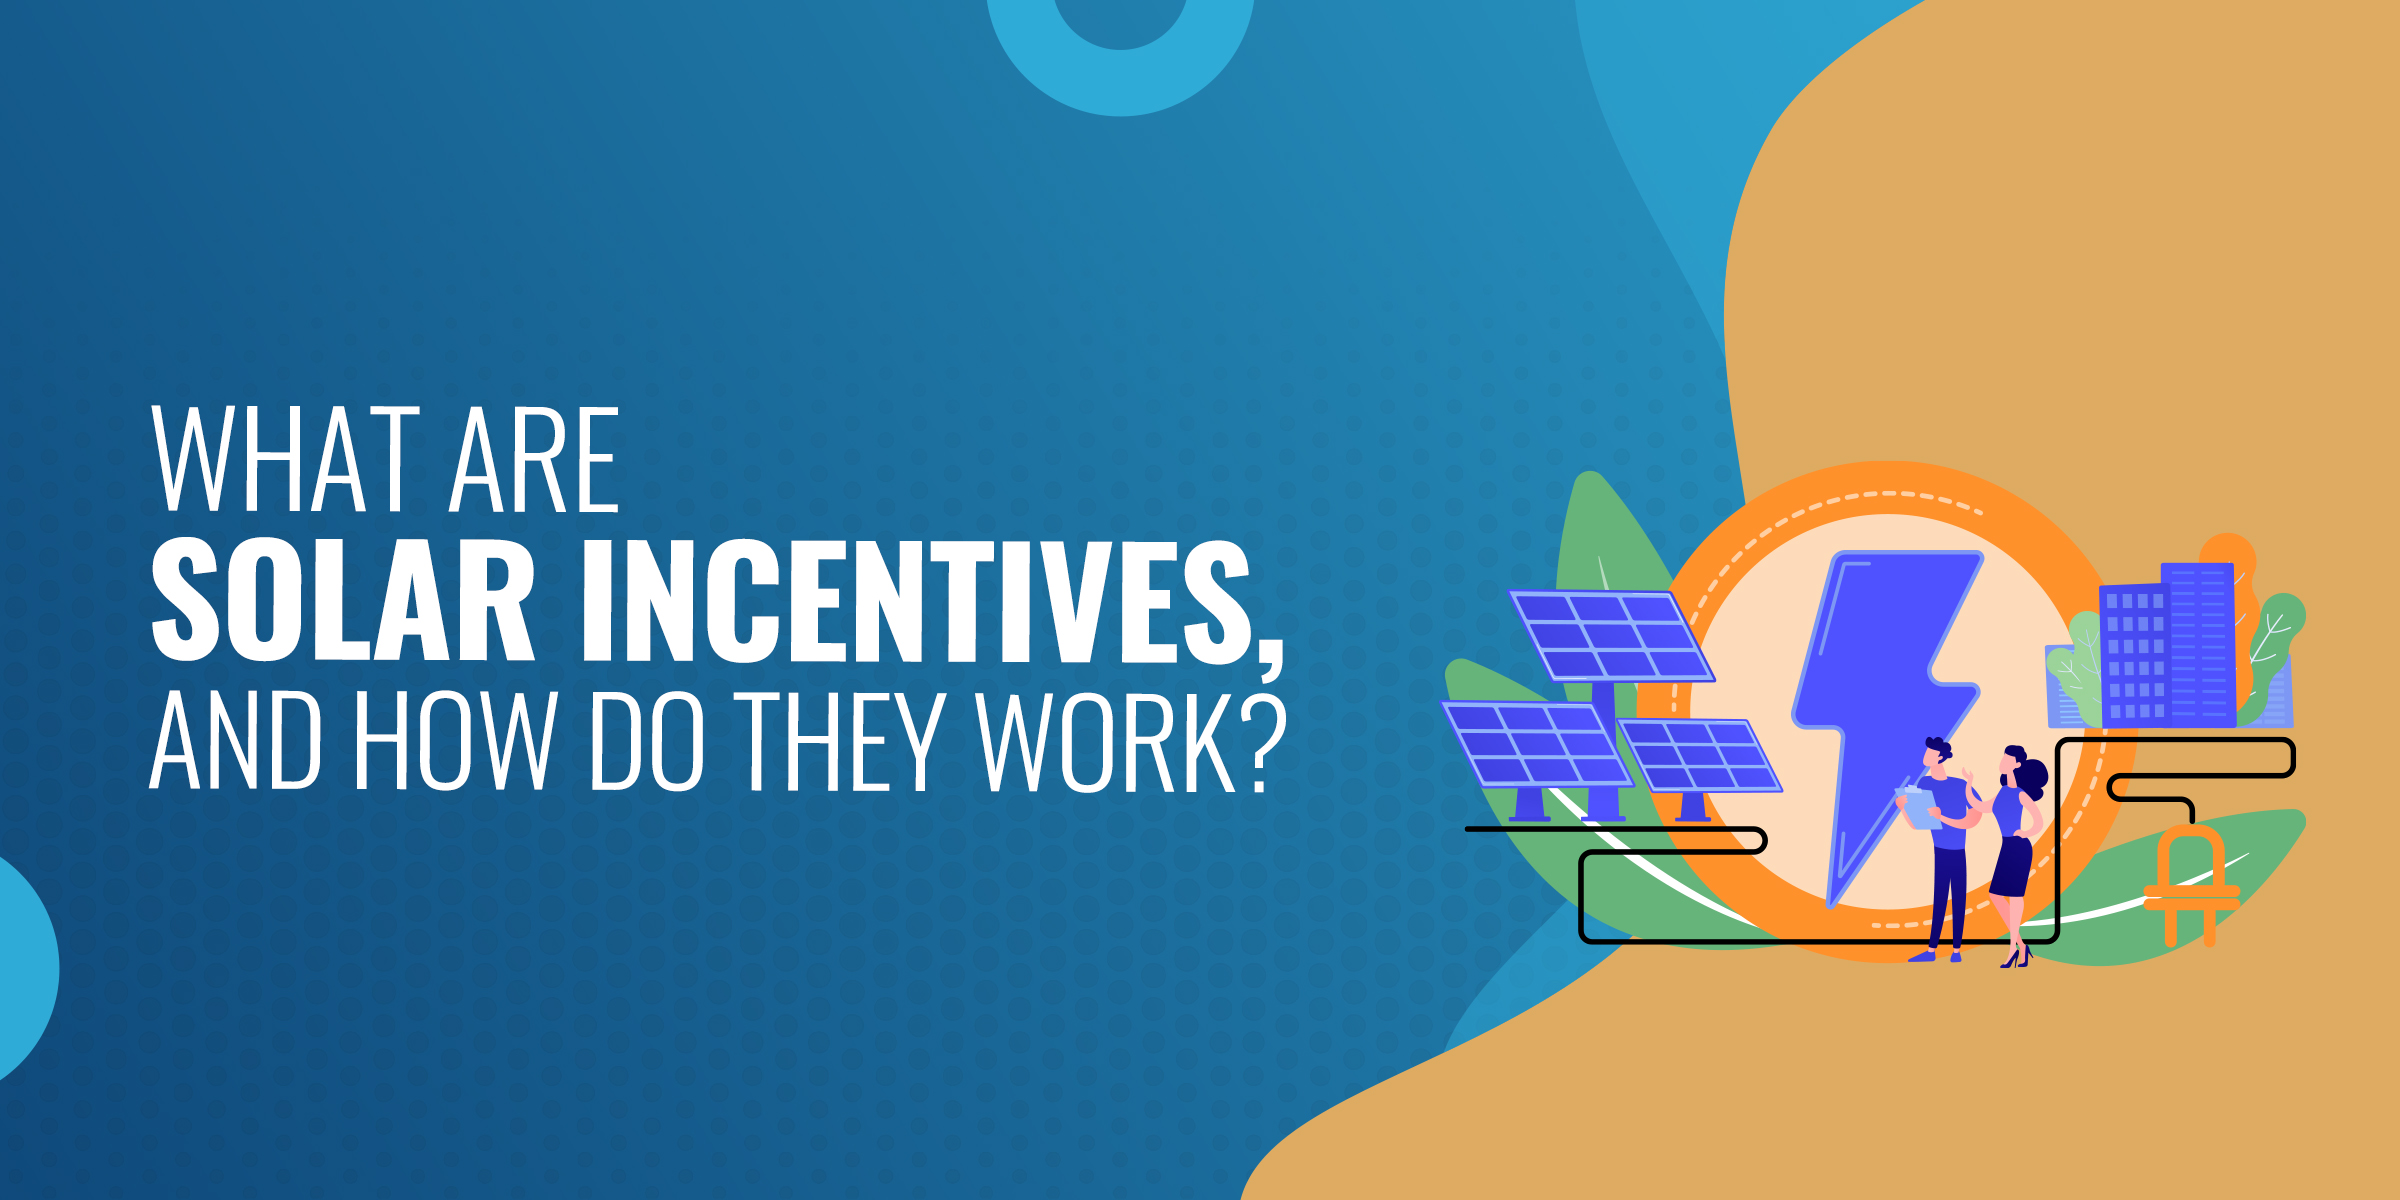 What Are Solar Incentives & How Do They Work?